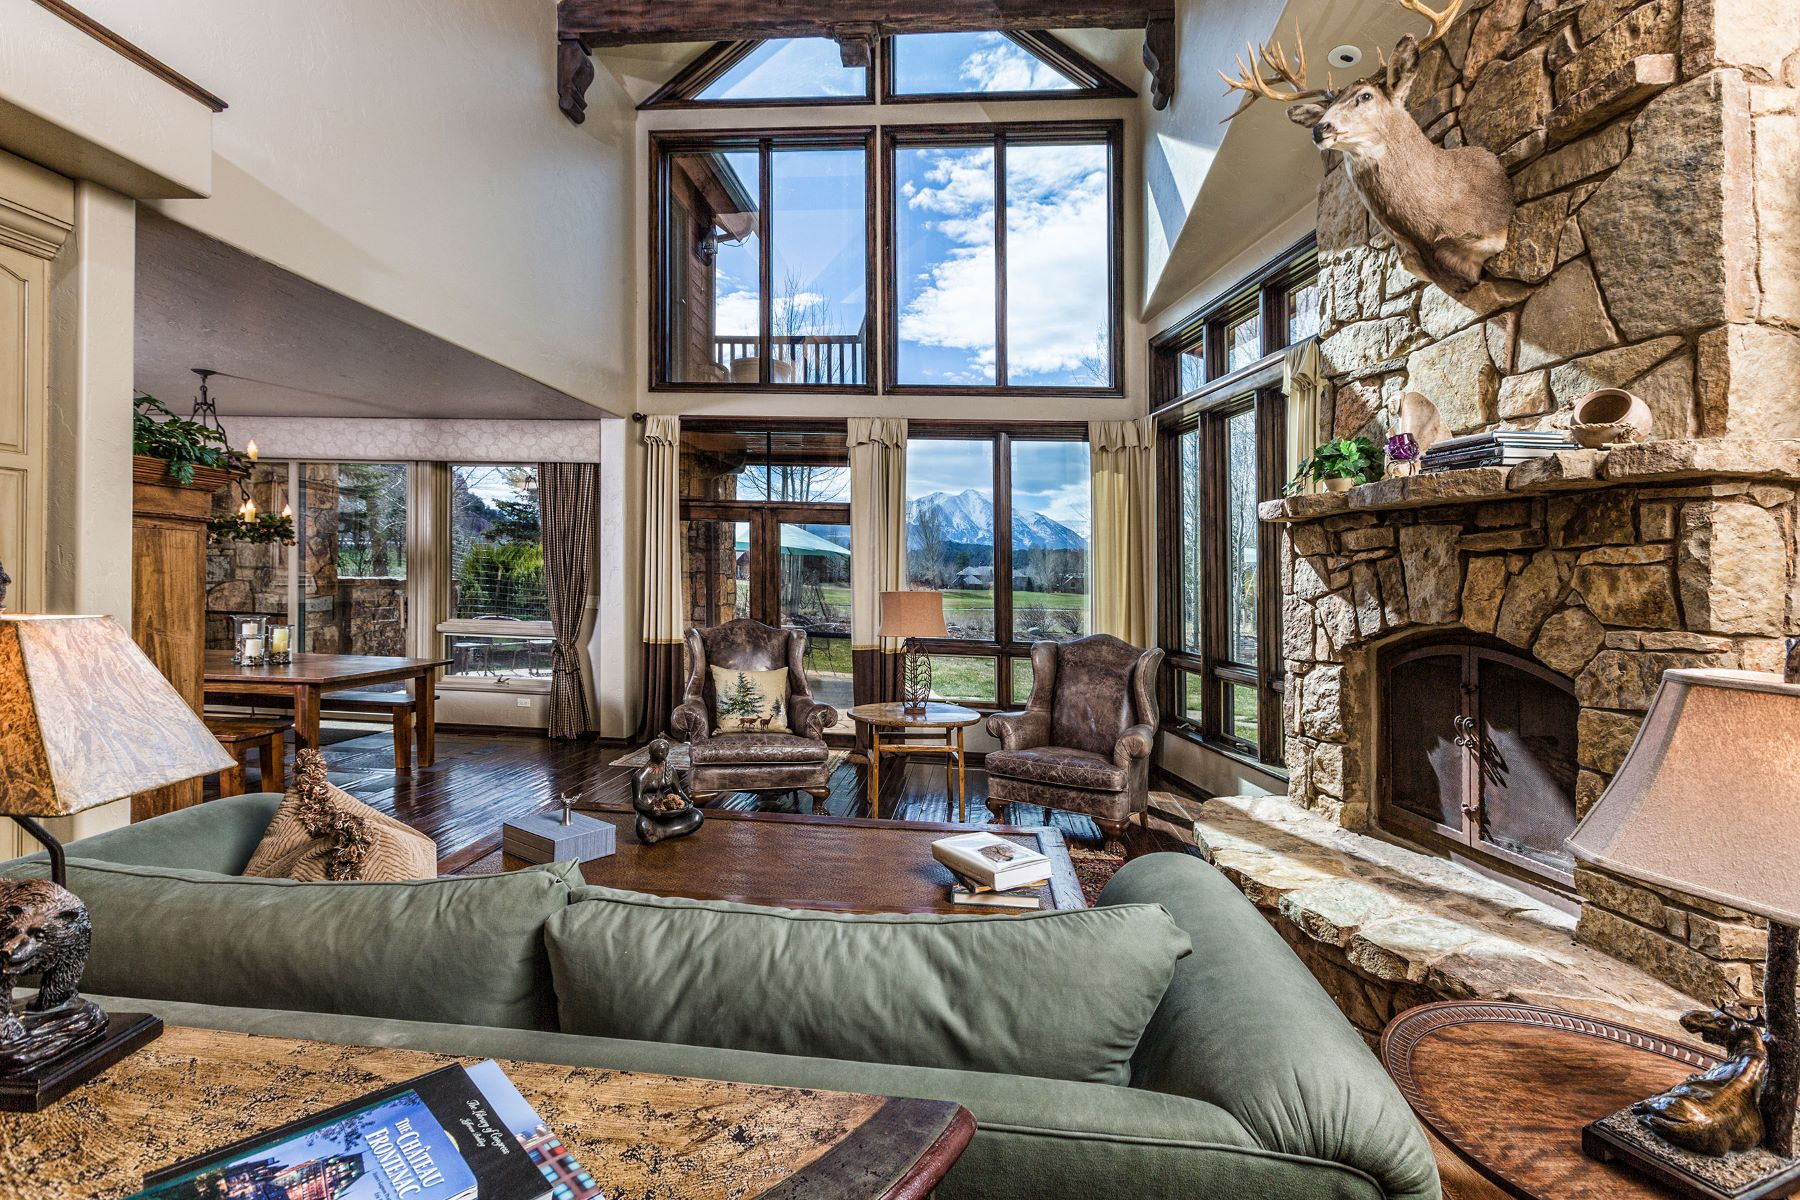 Townhouse for Sale at Spacious Townhome with Unobstructed Mountain Views 98 Sweetgrass Road #B, Carbondale, Colorado, 81623 United States